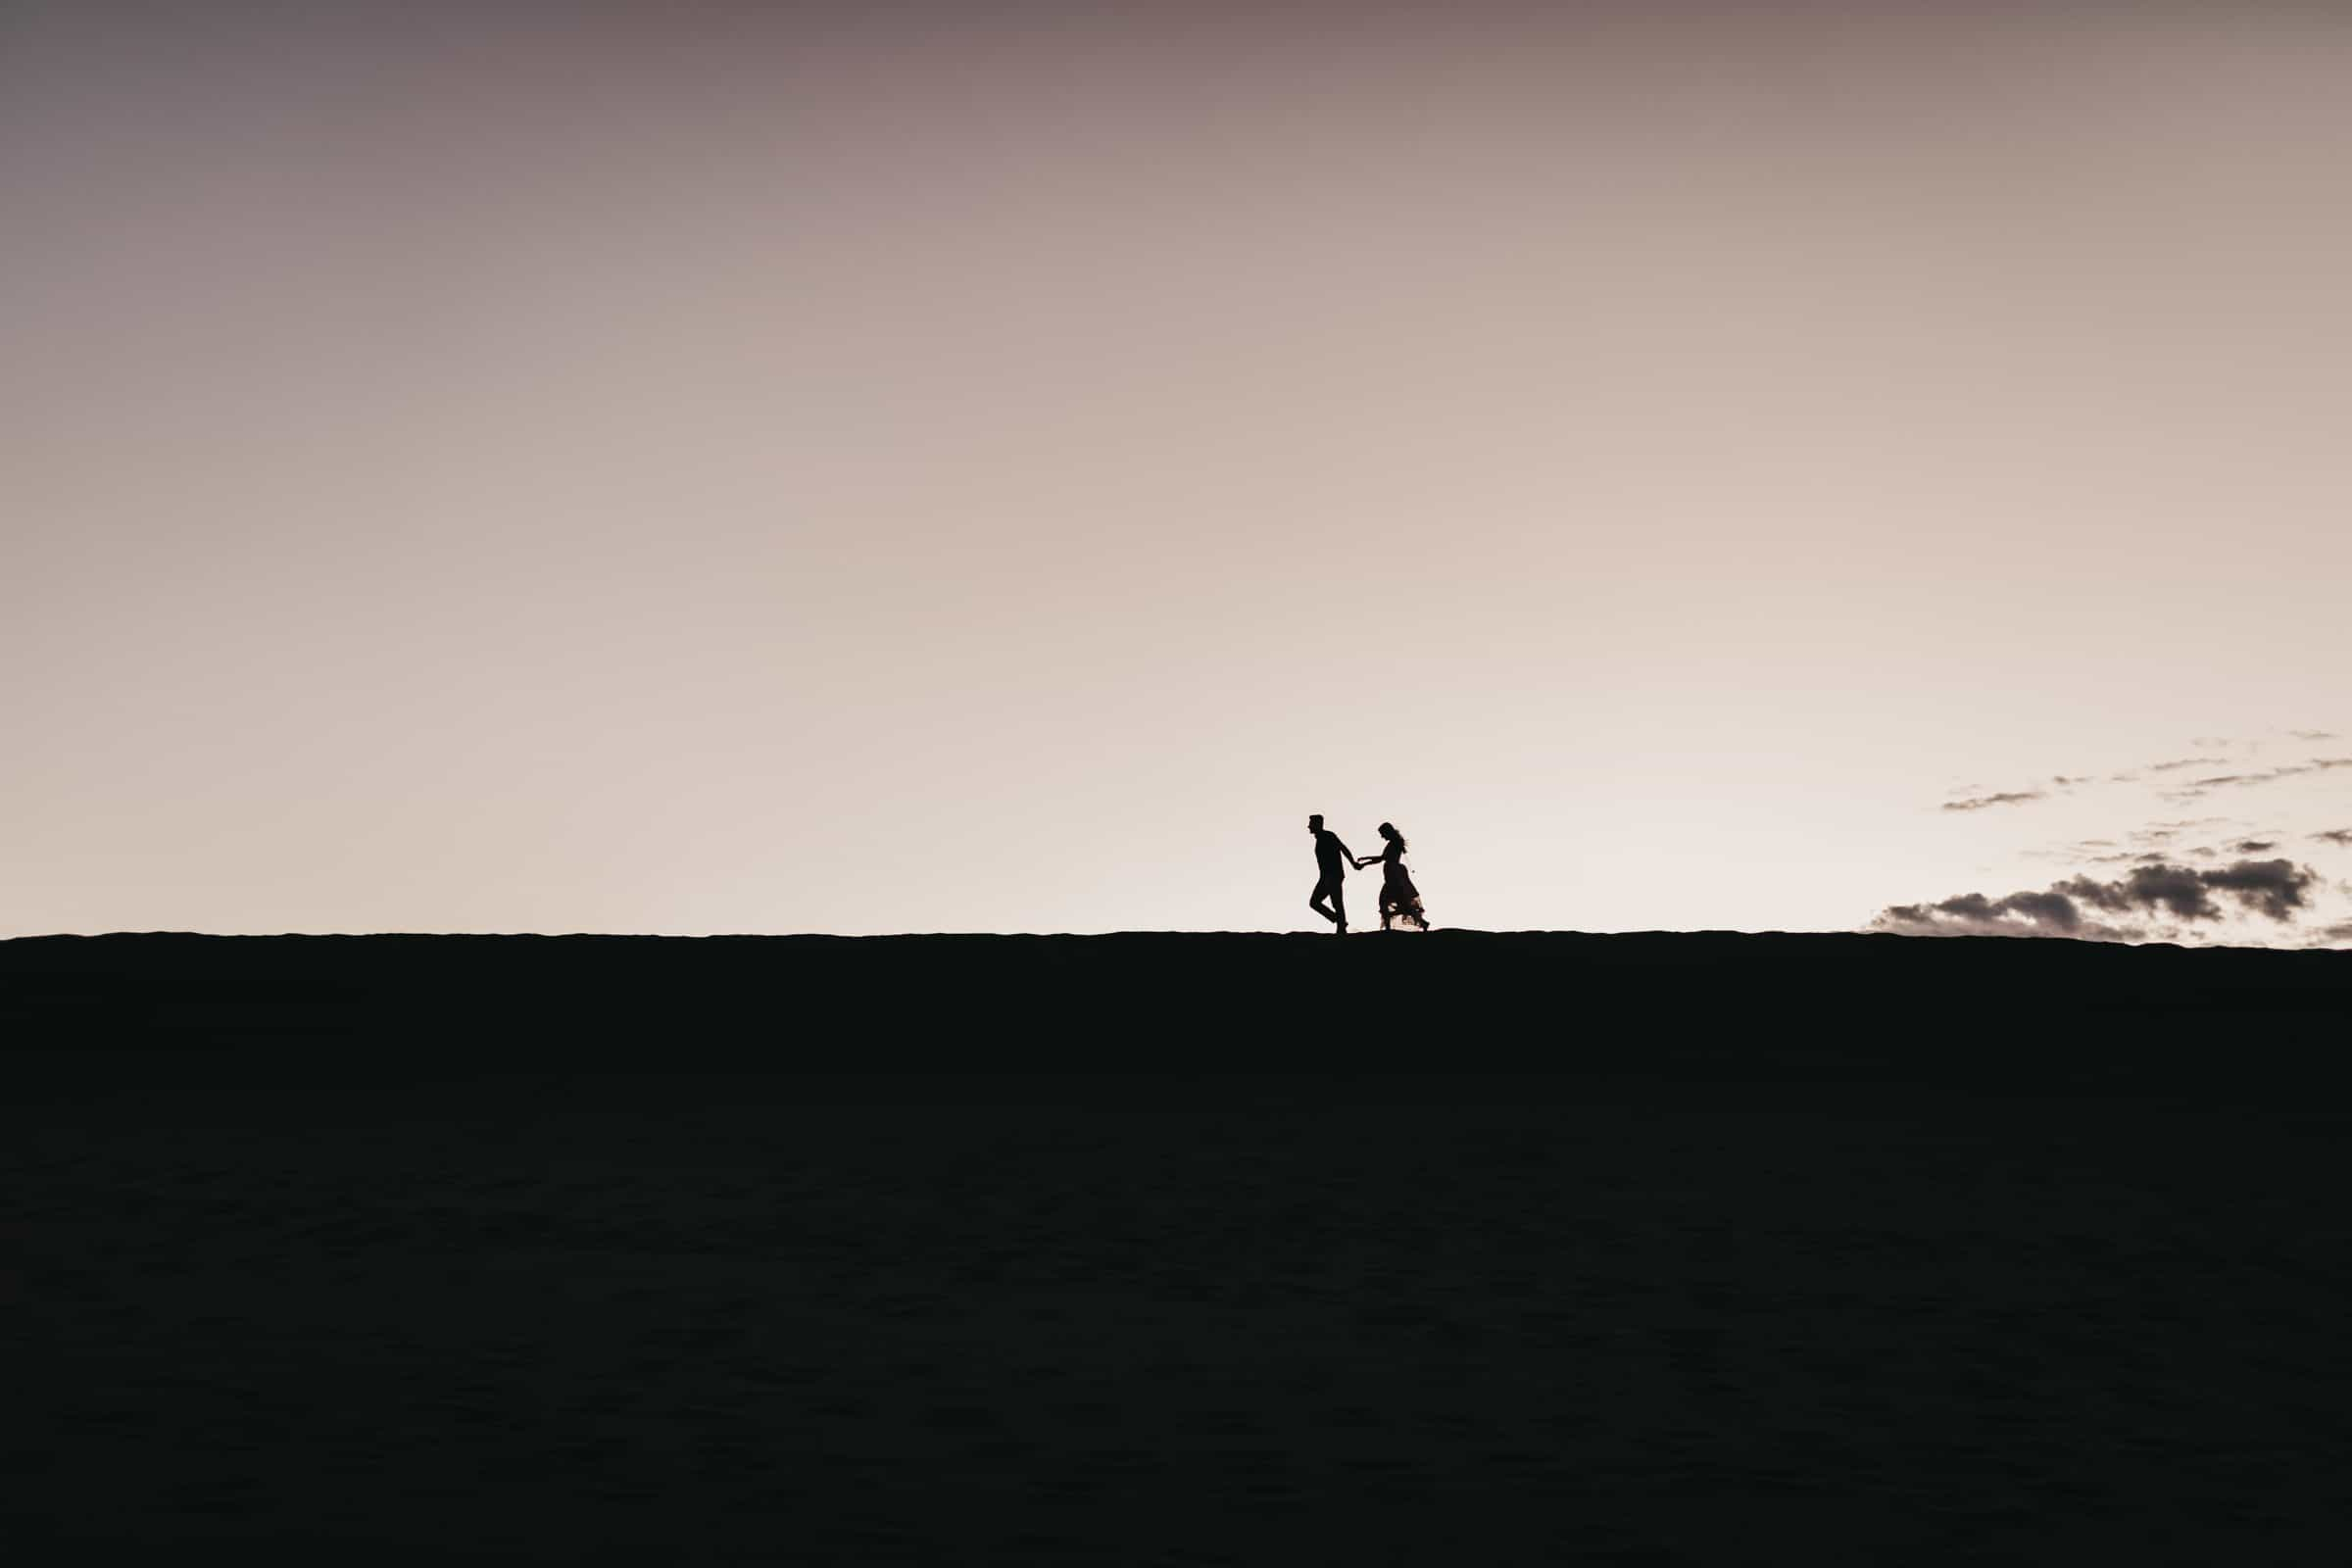 silhouette of couple running over the horizon of sand dunes during sunrise